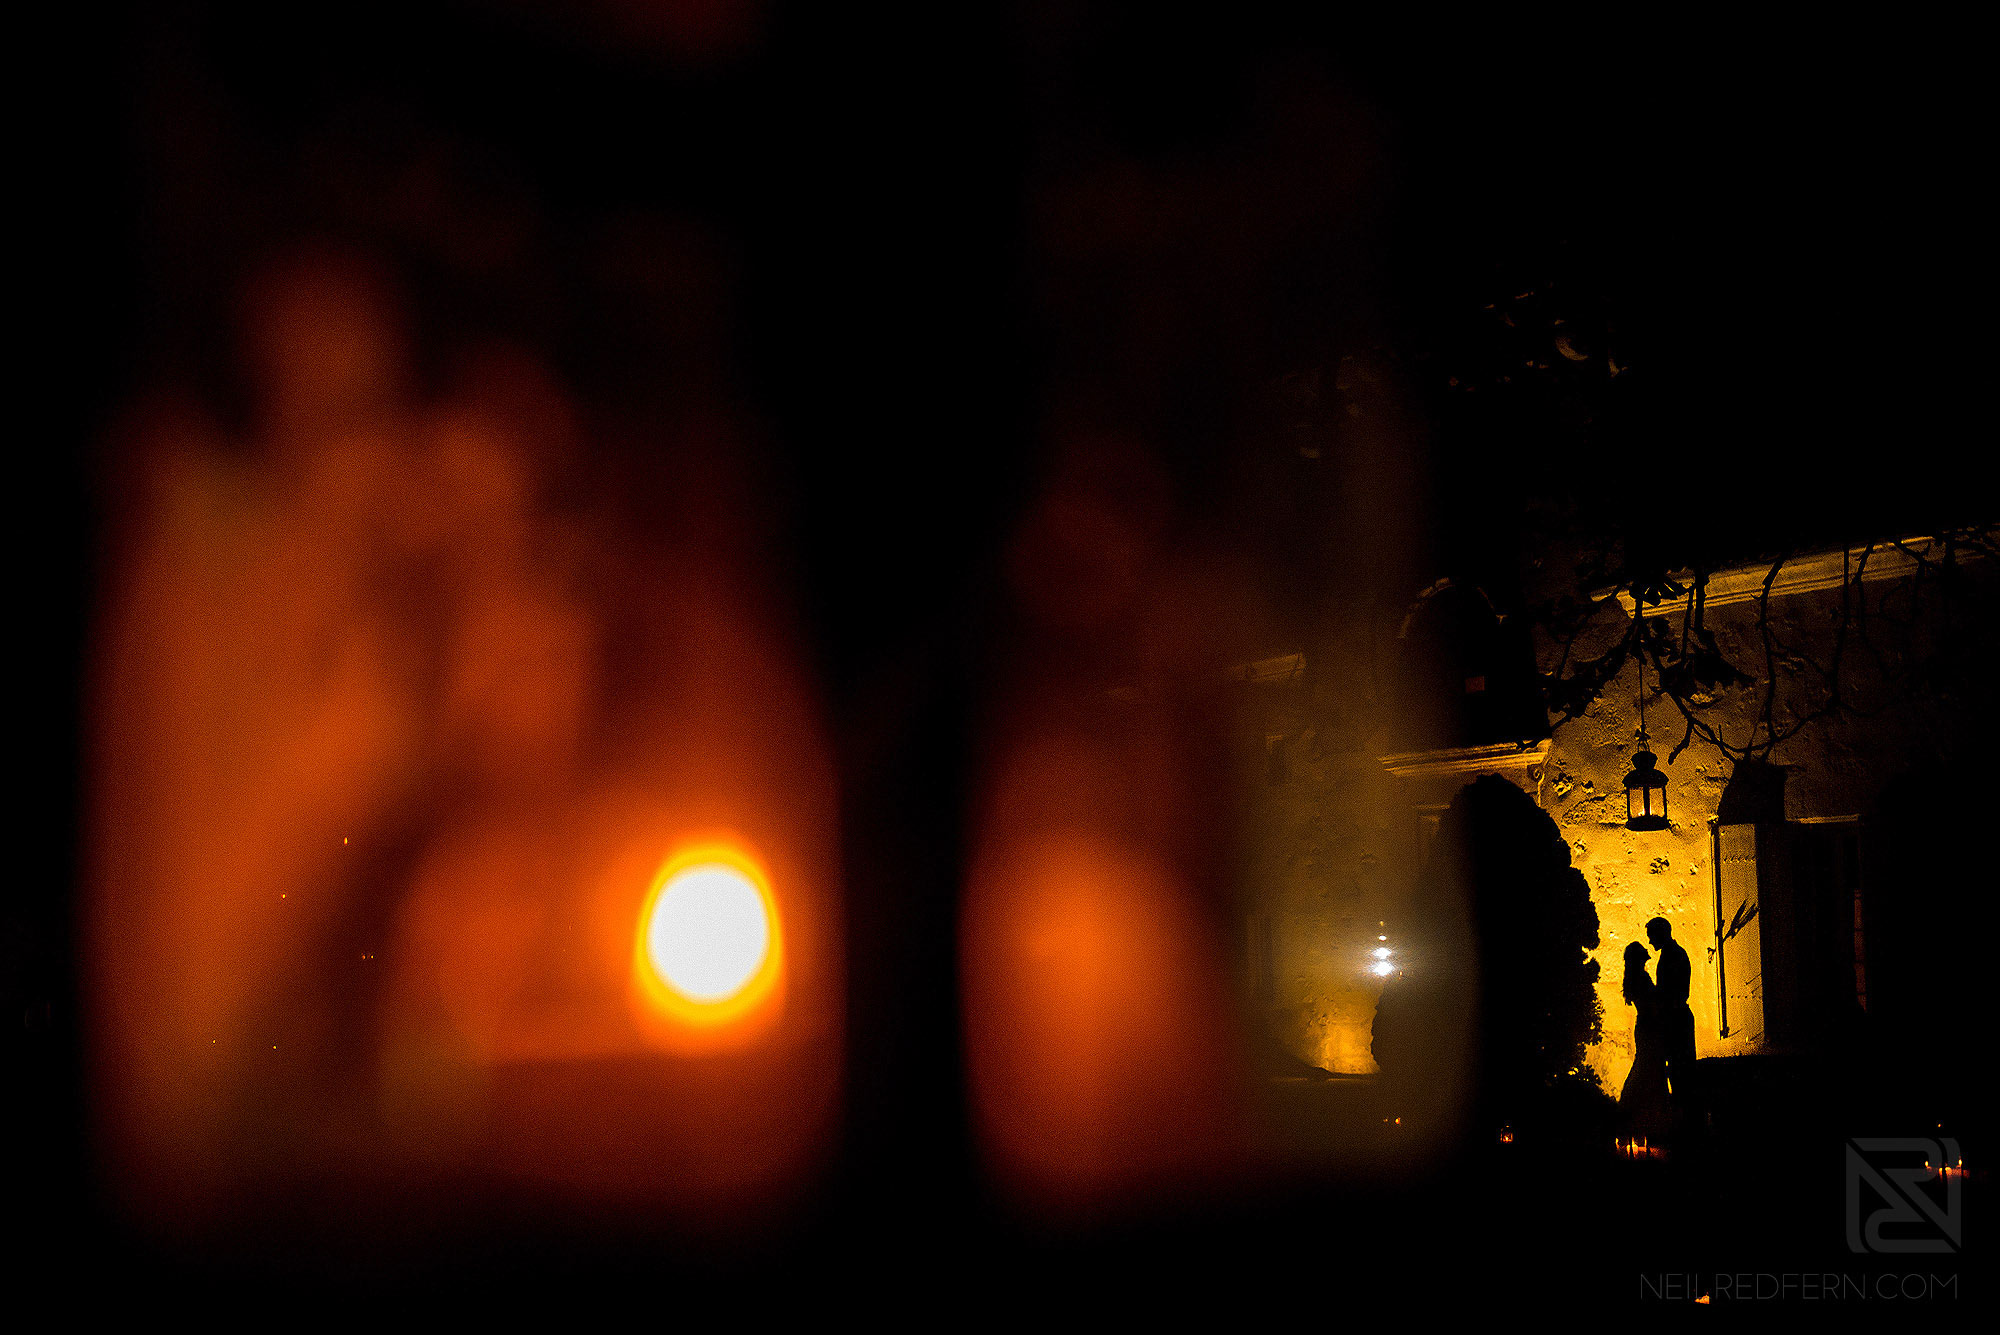 silhouette photograph of bride and groom at night